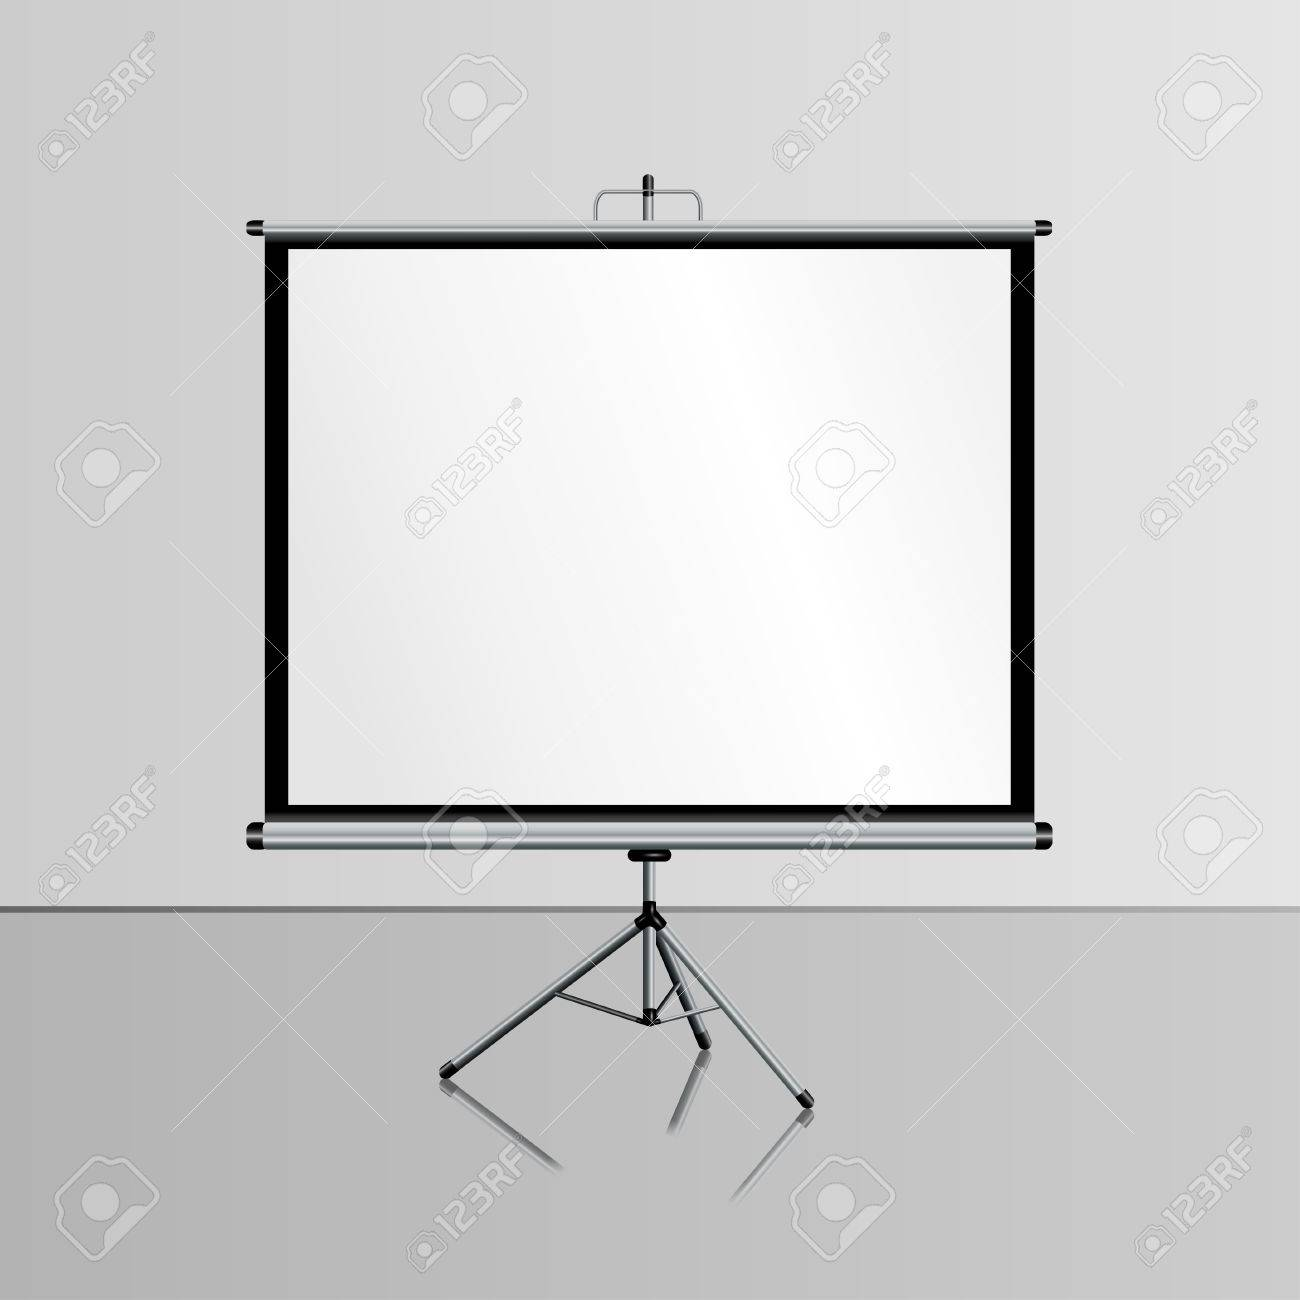 realistic blank projector screen for presentation whiteboard